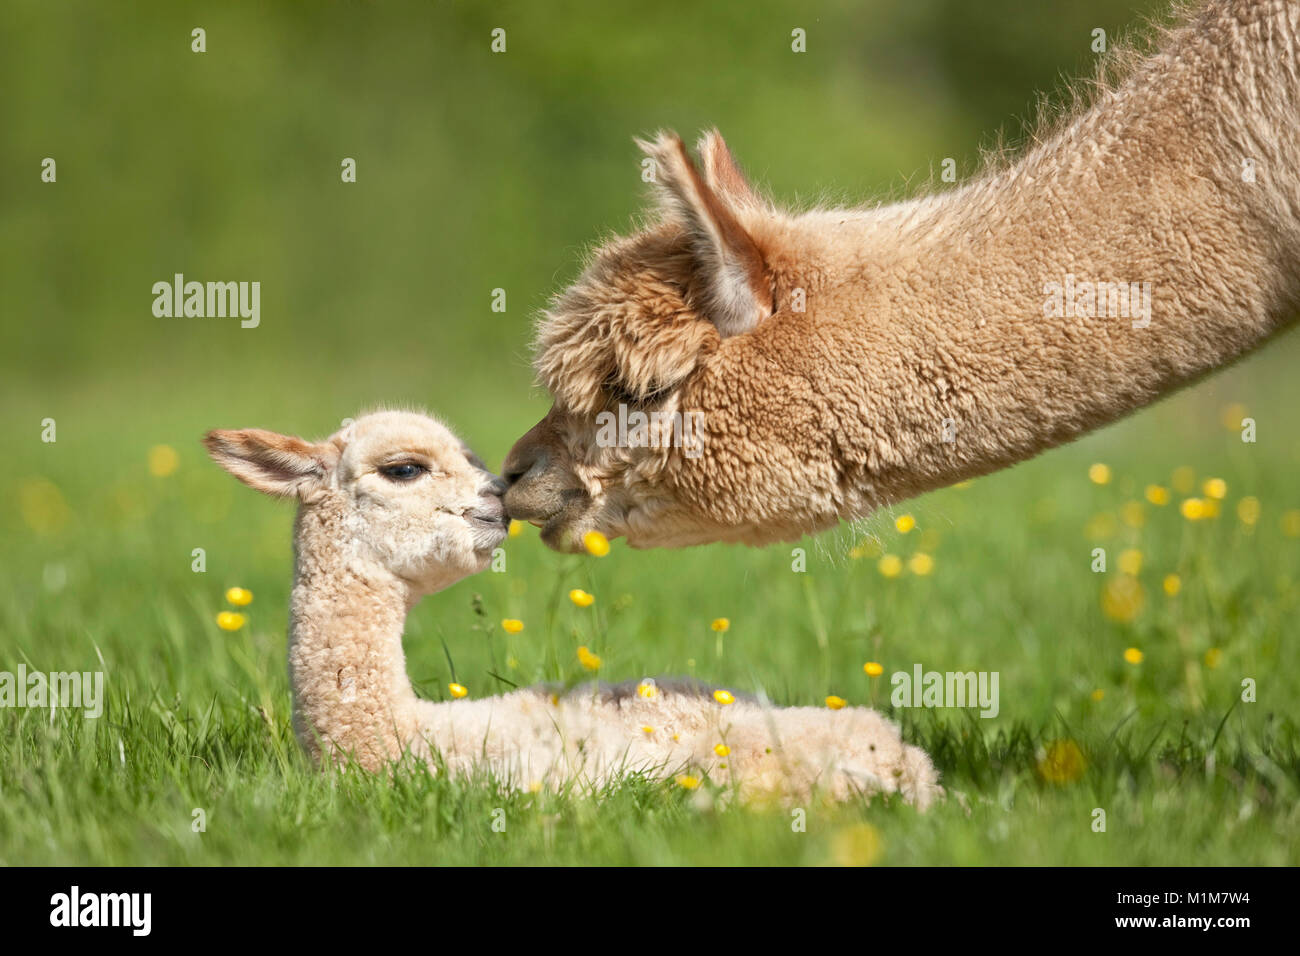 Alpaca (Lama pacos, Vicugna pacos). Mother sniffing at young on a meadow. Germany Stock Photo